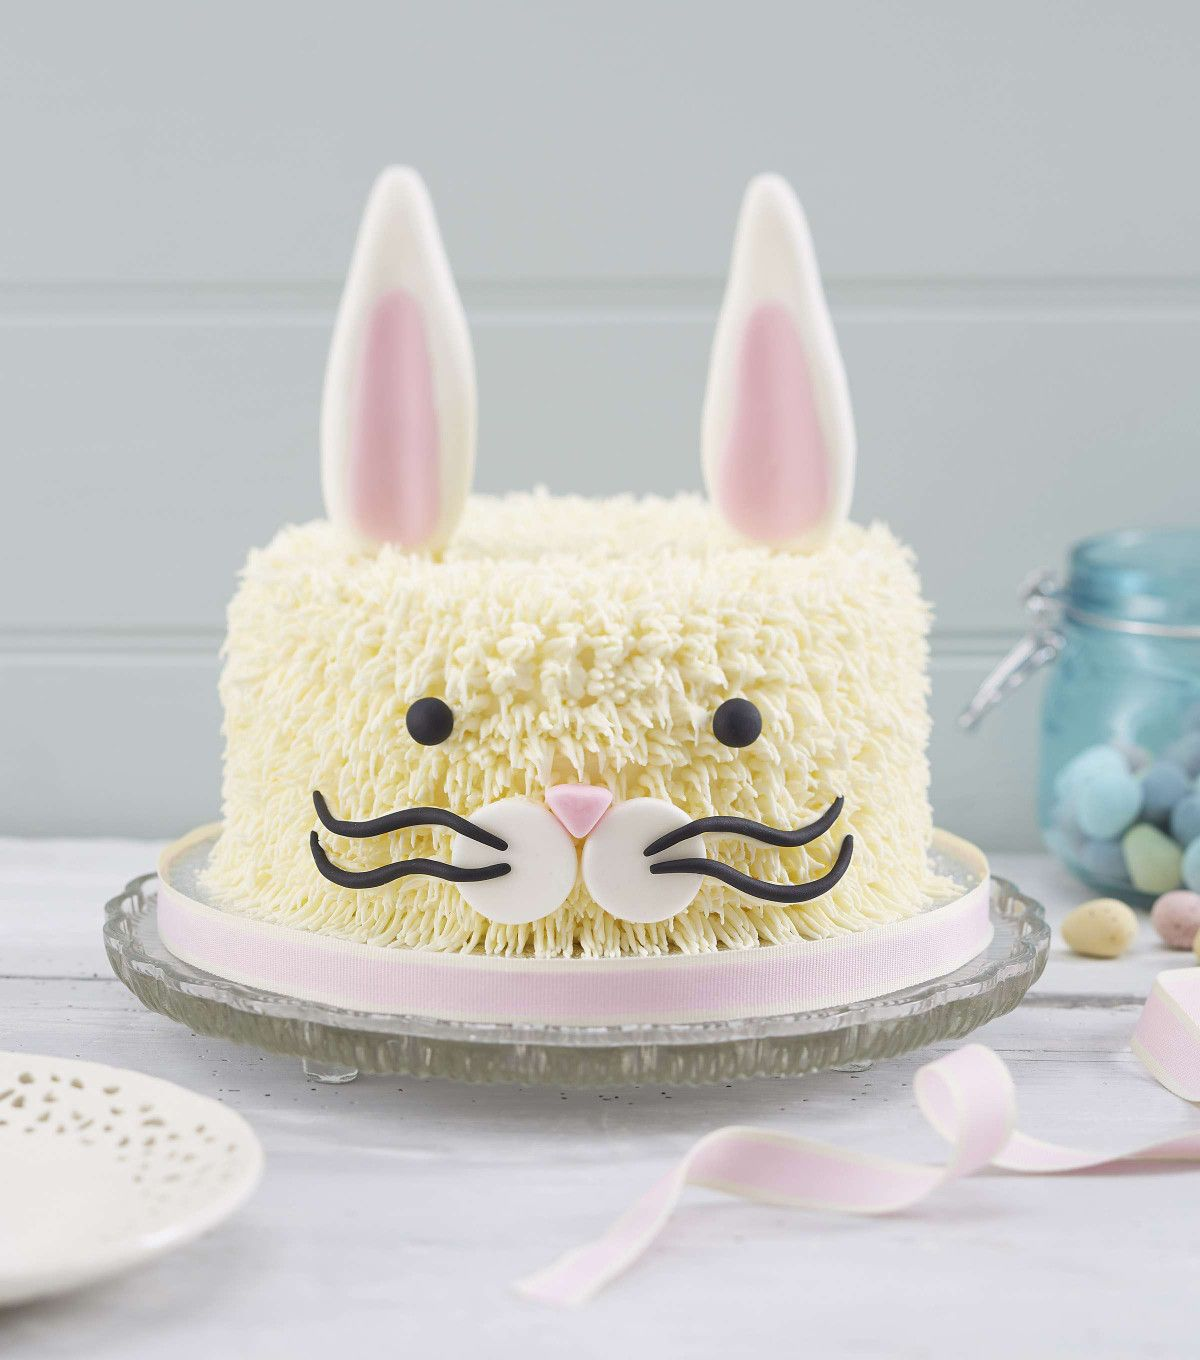 How to Make an Easter Bunny Cake | Easter bunny cake, Easter bunny ...